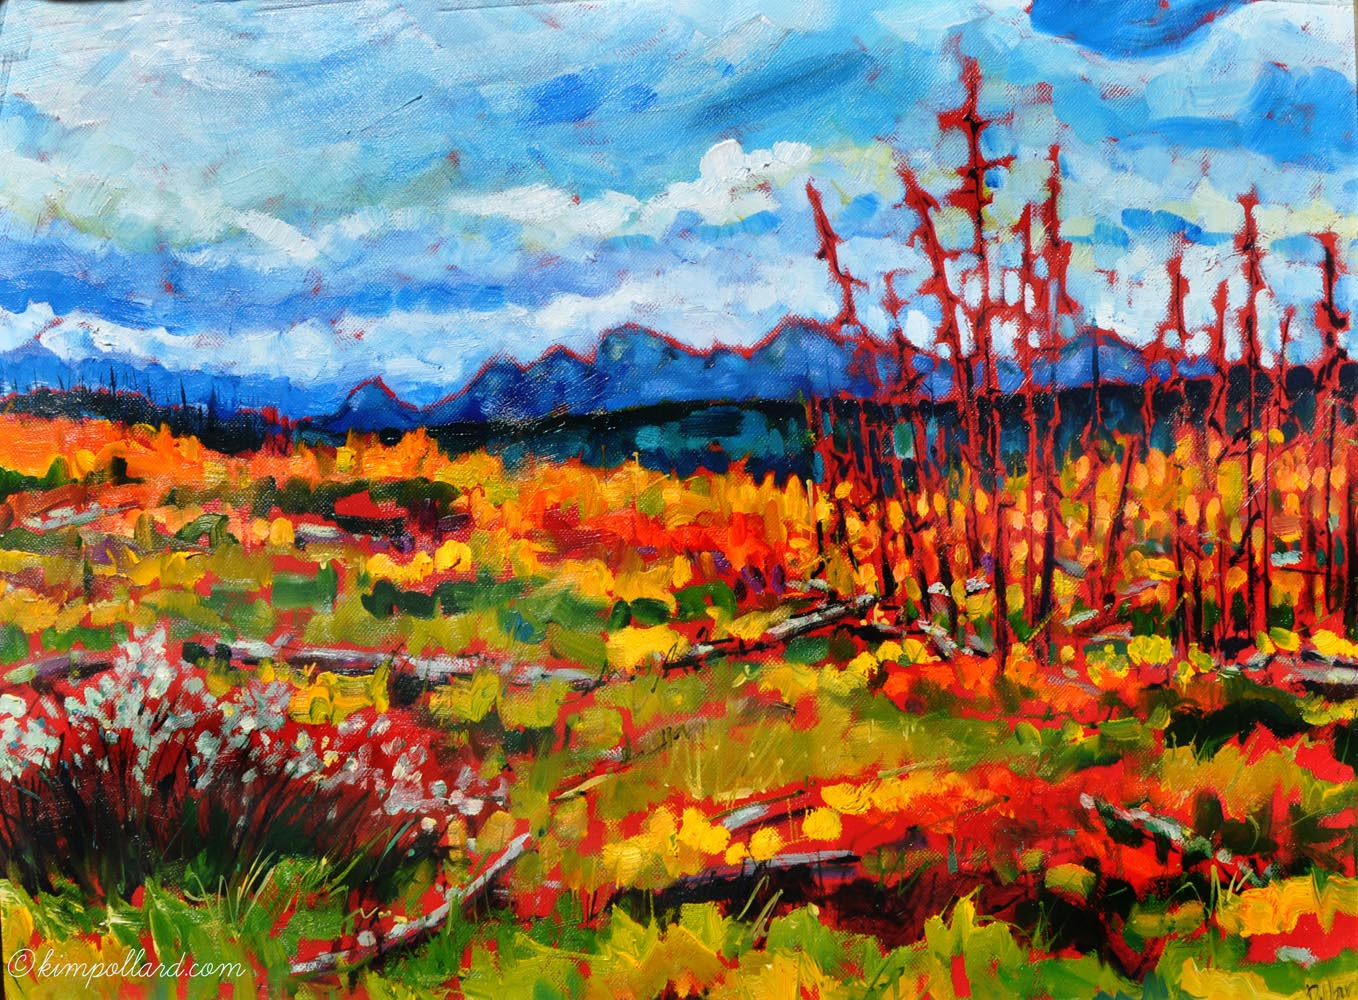 Wild Horse Road | Landscape Paintings | Kim Pollard | Canadian Artist | Alberta | Wild Horse Country